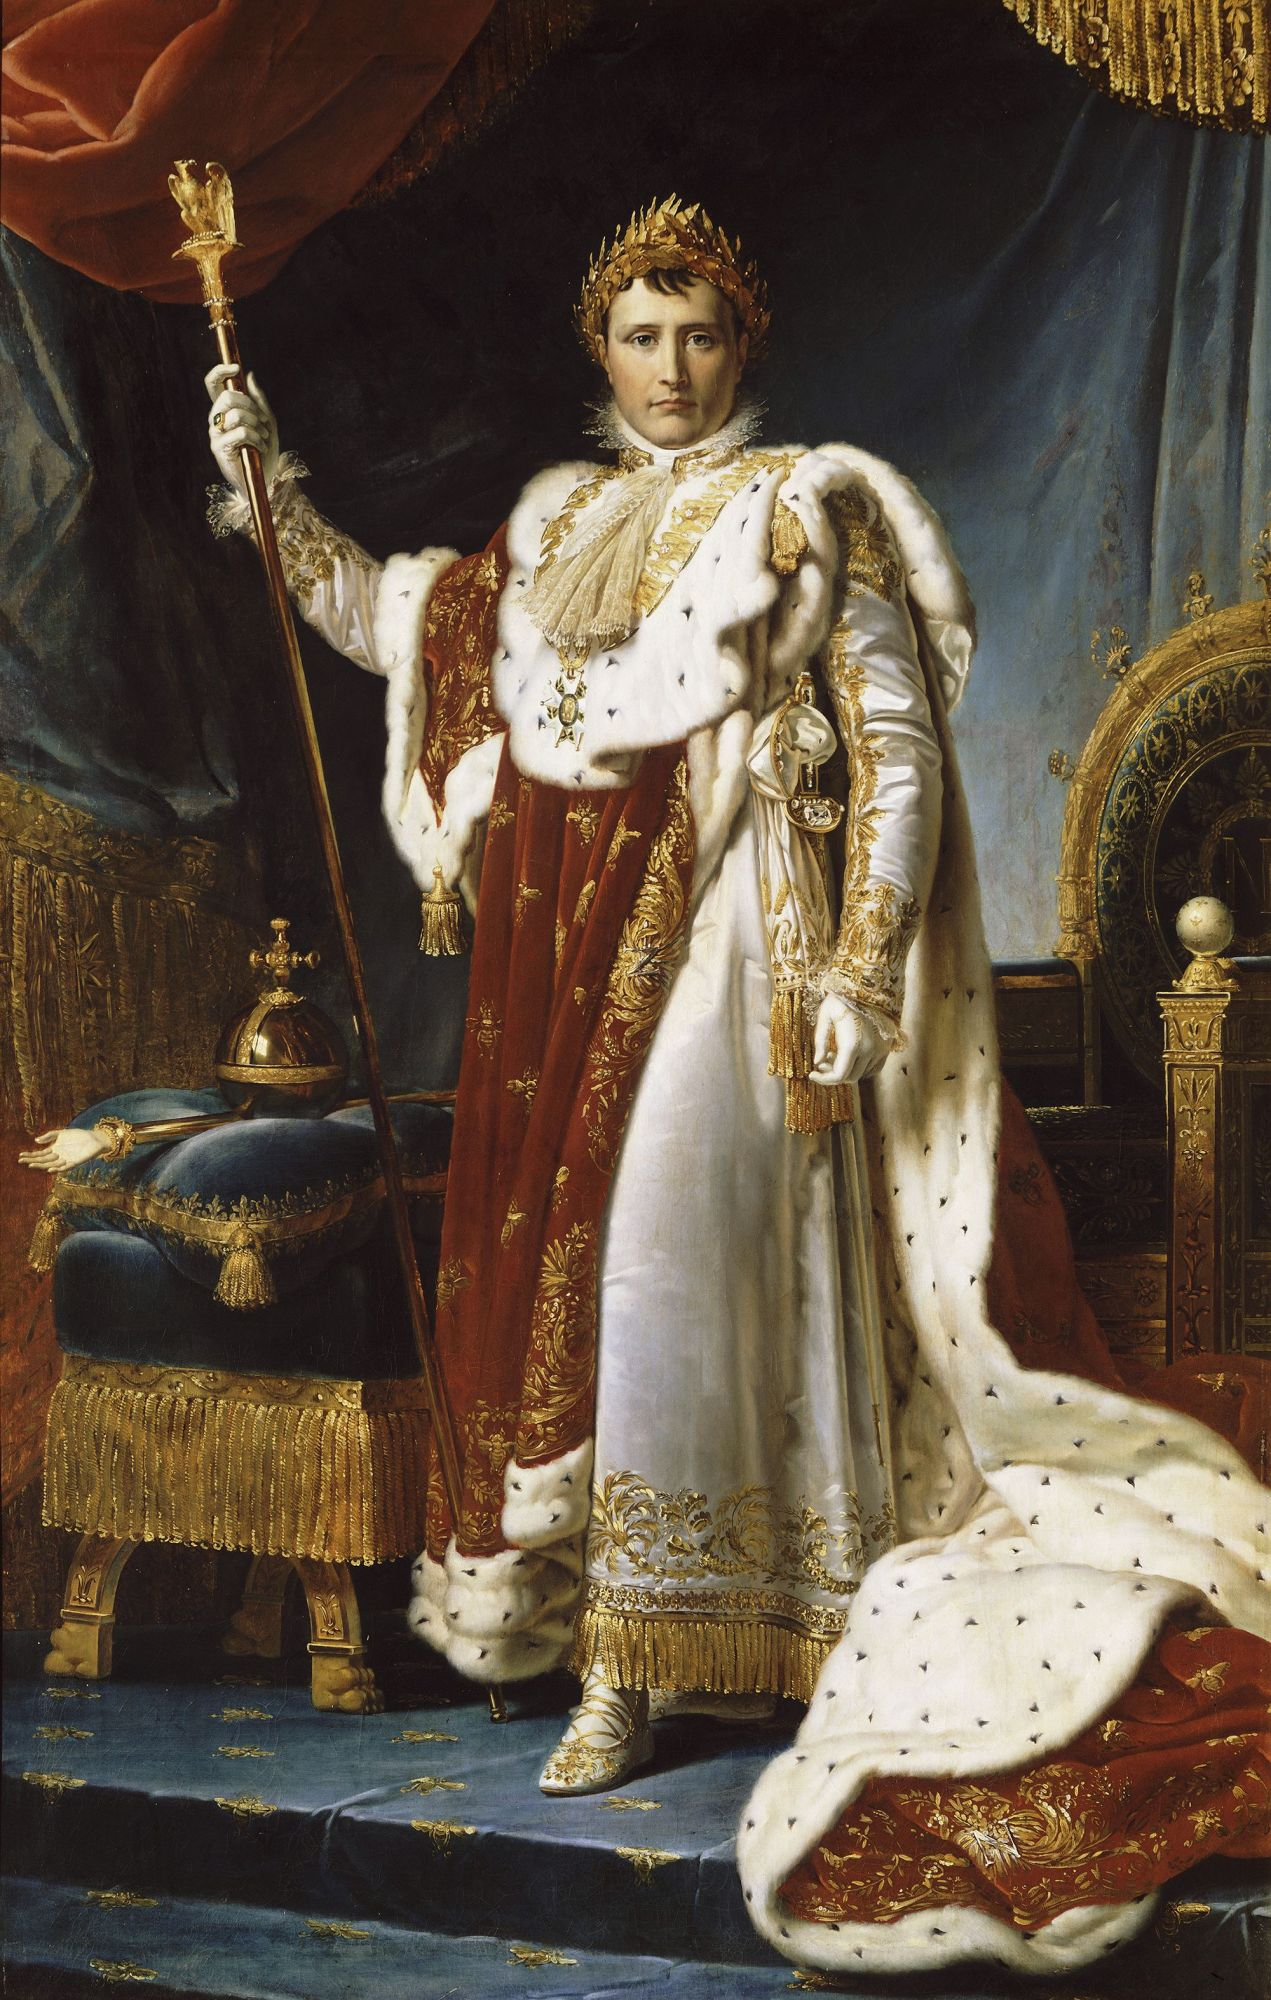 A short biography of Napoleon Bonaparte